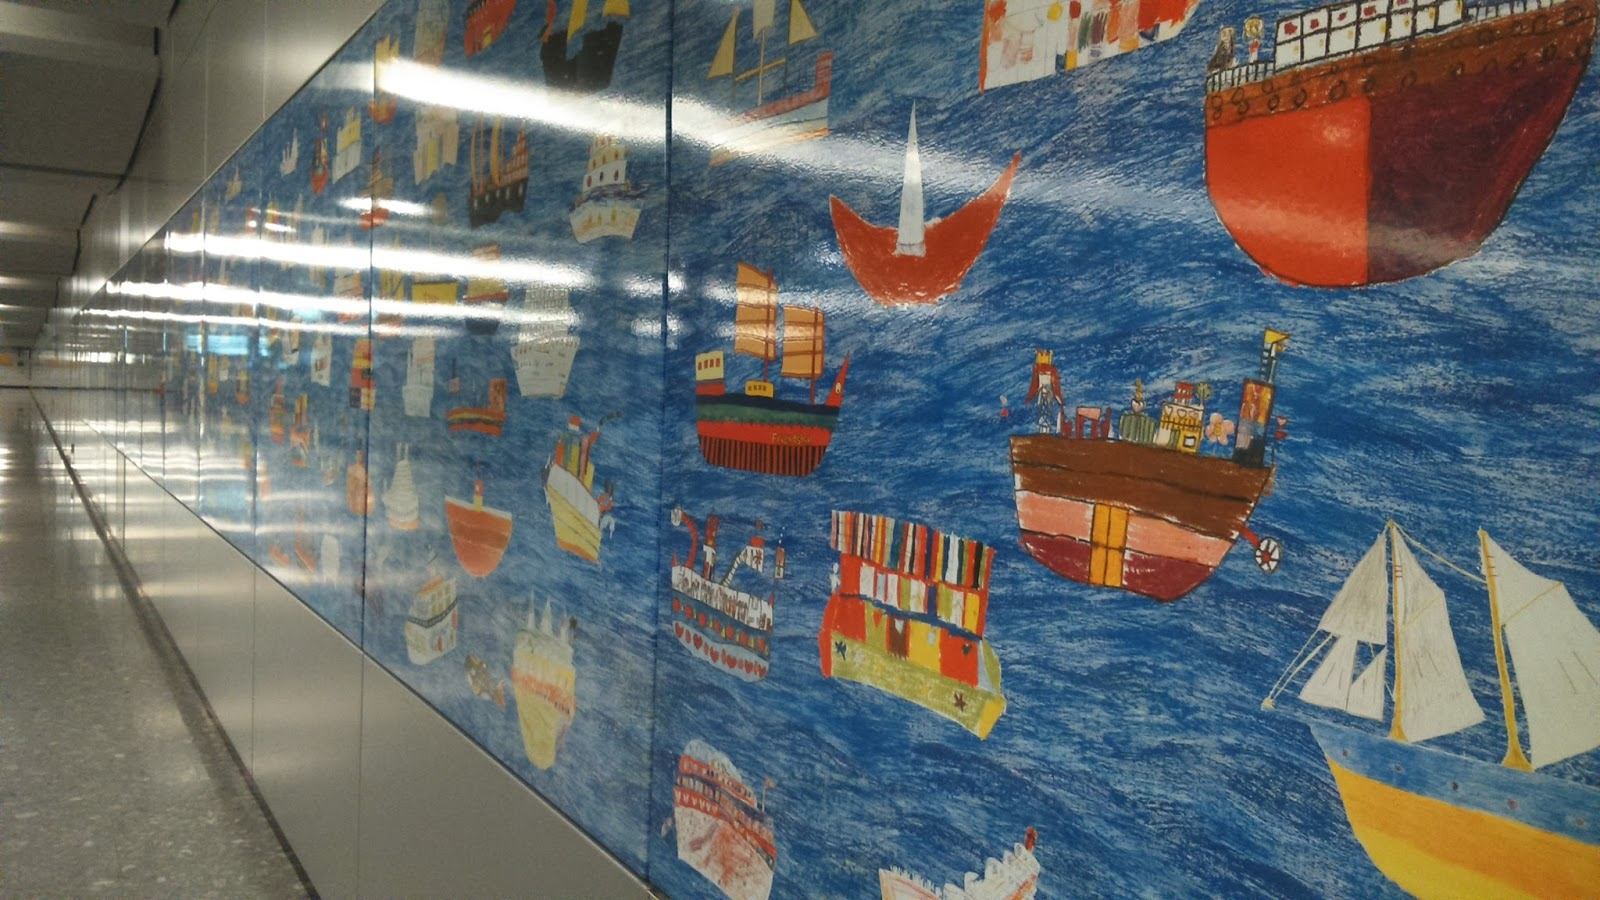 drawing of different types of ships at the concourse level ships range from chinese junks to cargo ships the artwork stretches one end to the end of a